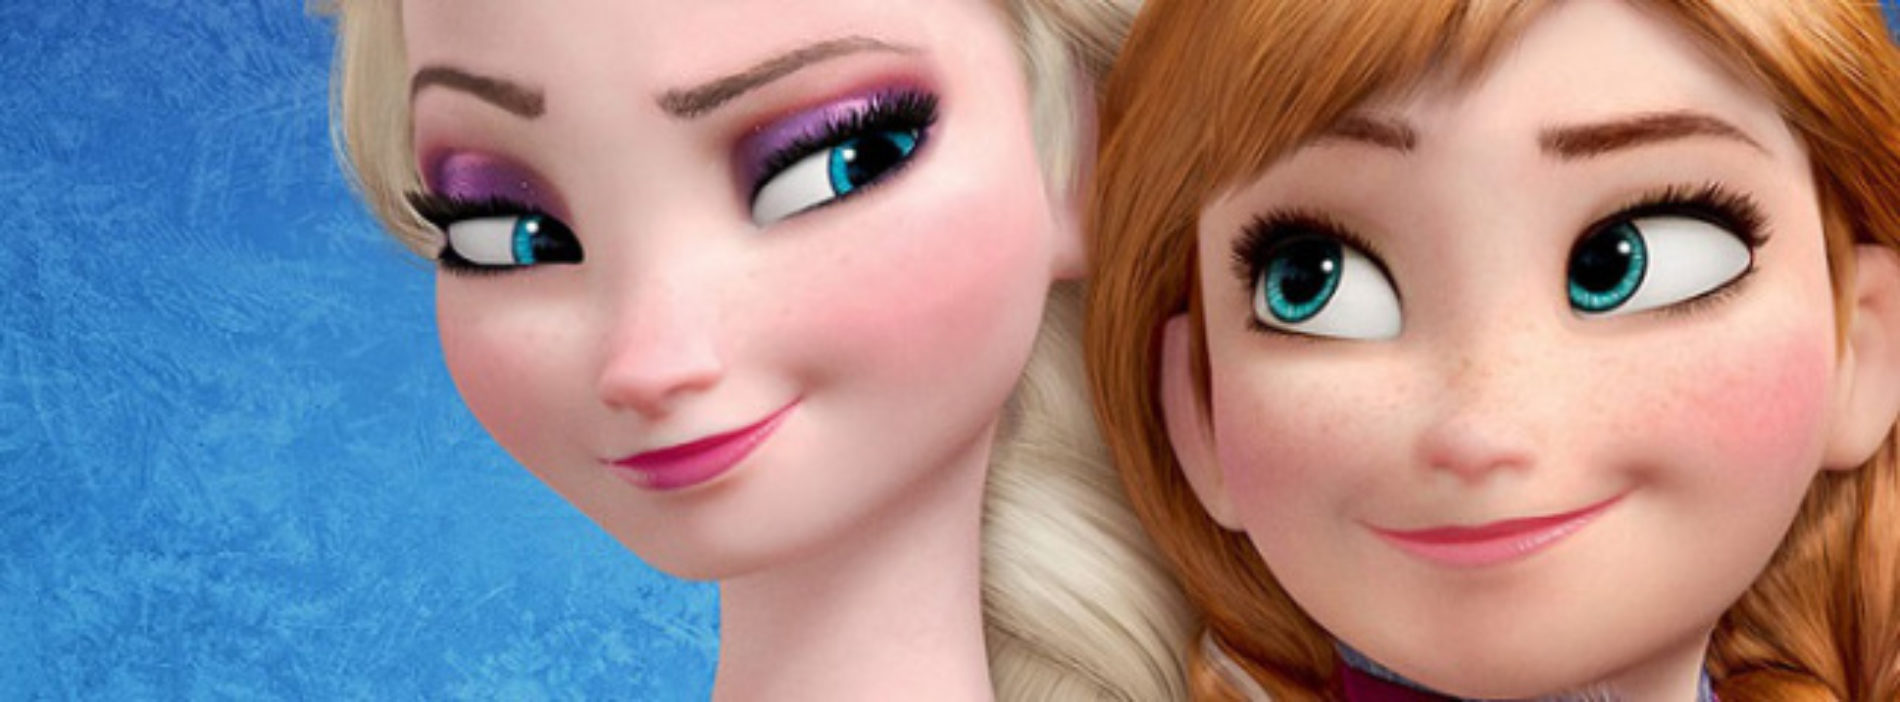 """Frozen"" Progress in Gay Rights"